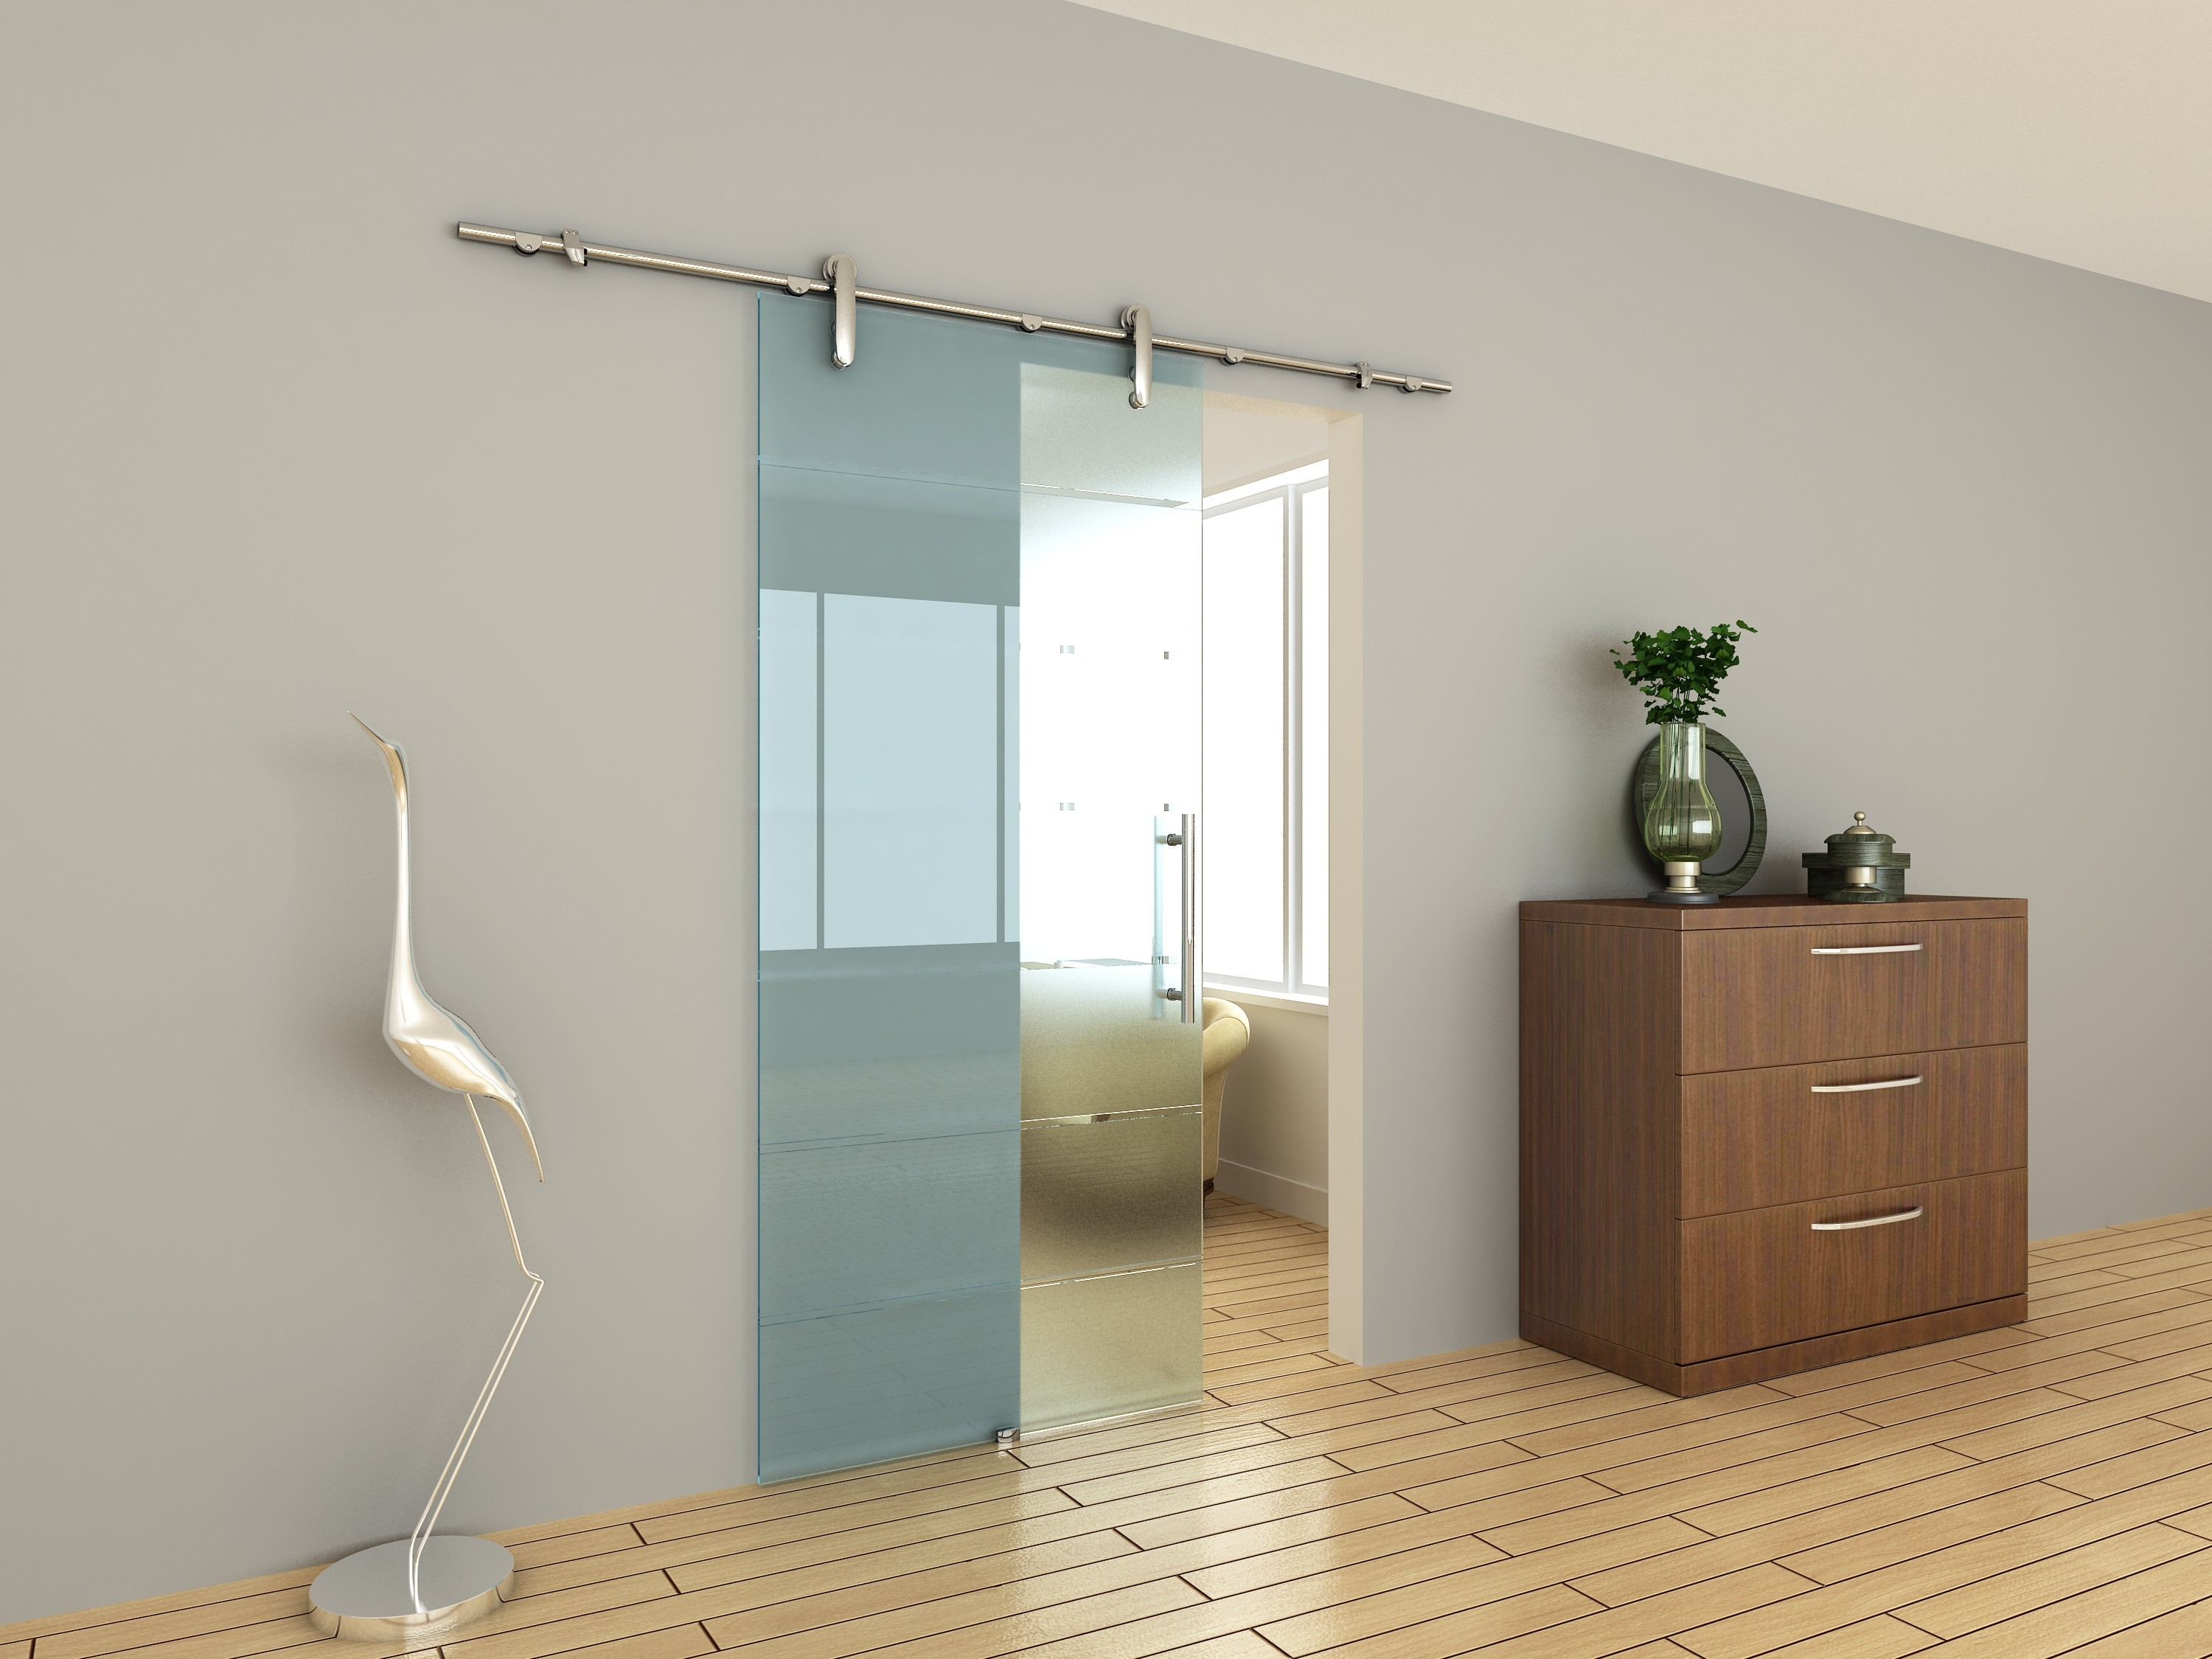 Permalink to Sliding Glass Bathroom Entry Door